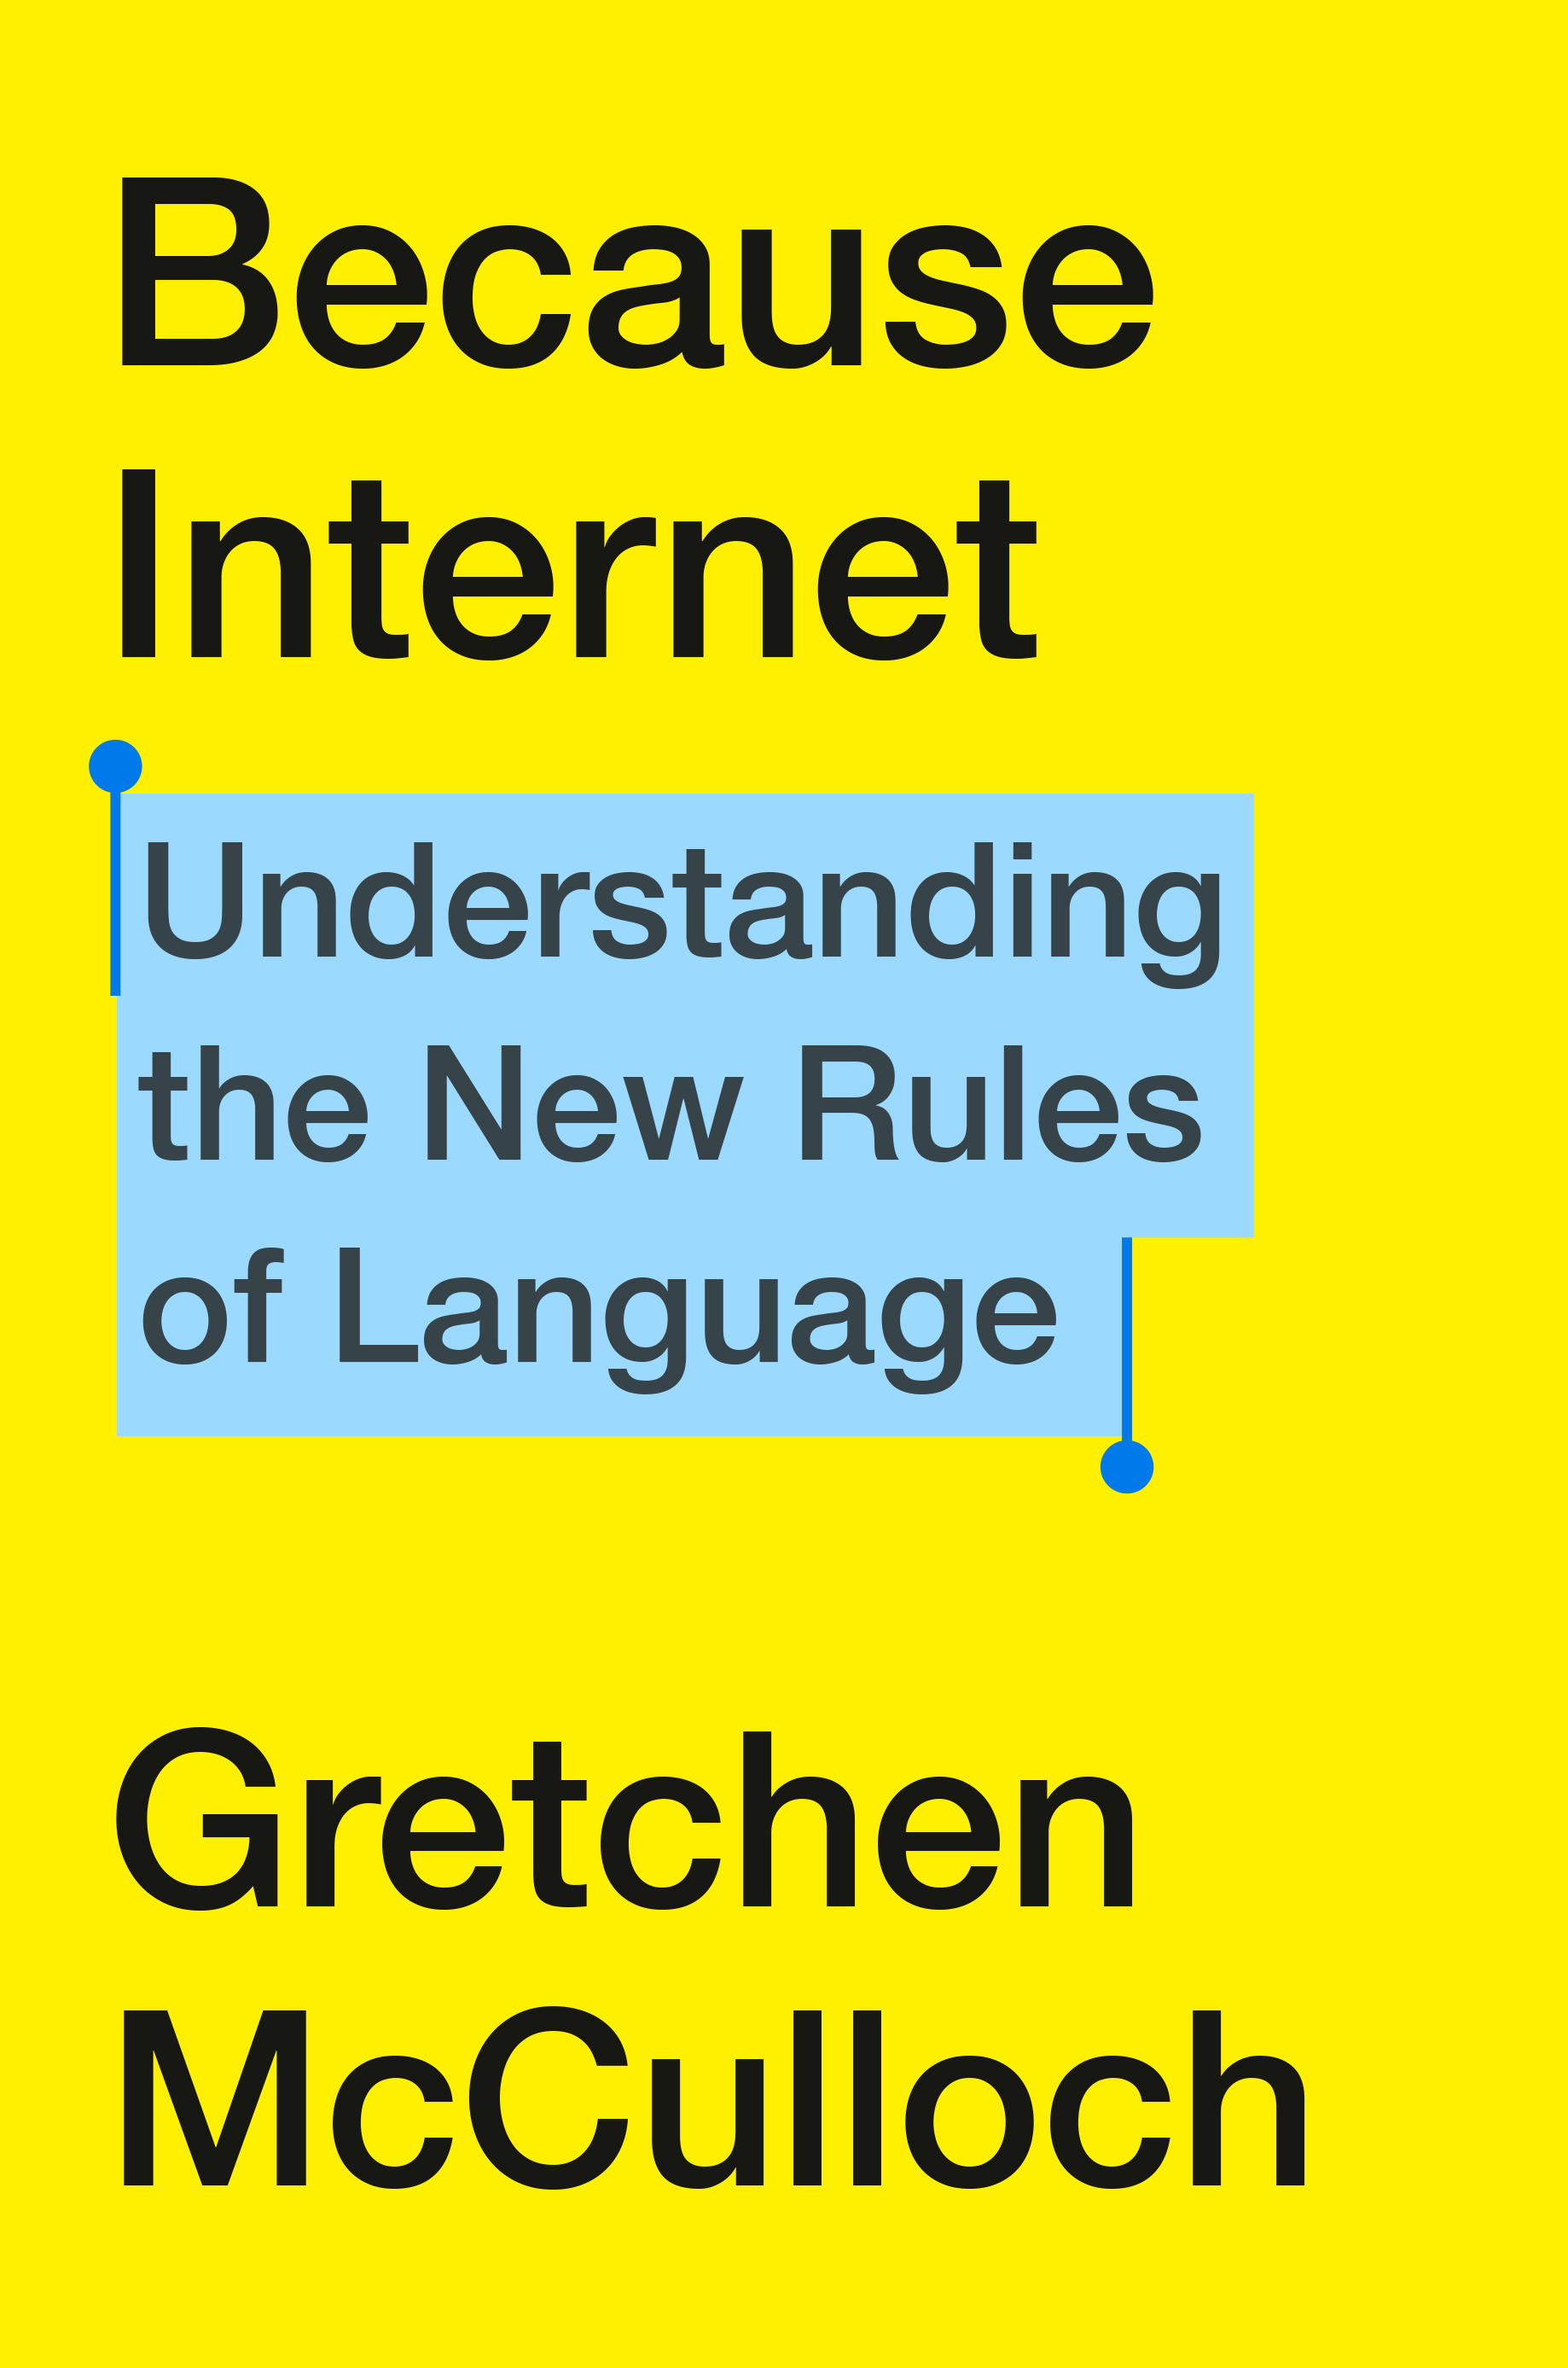 Because Internet: Understanding the New Rules of Language book cover (yellow and blue)